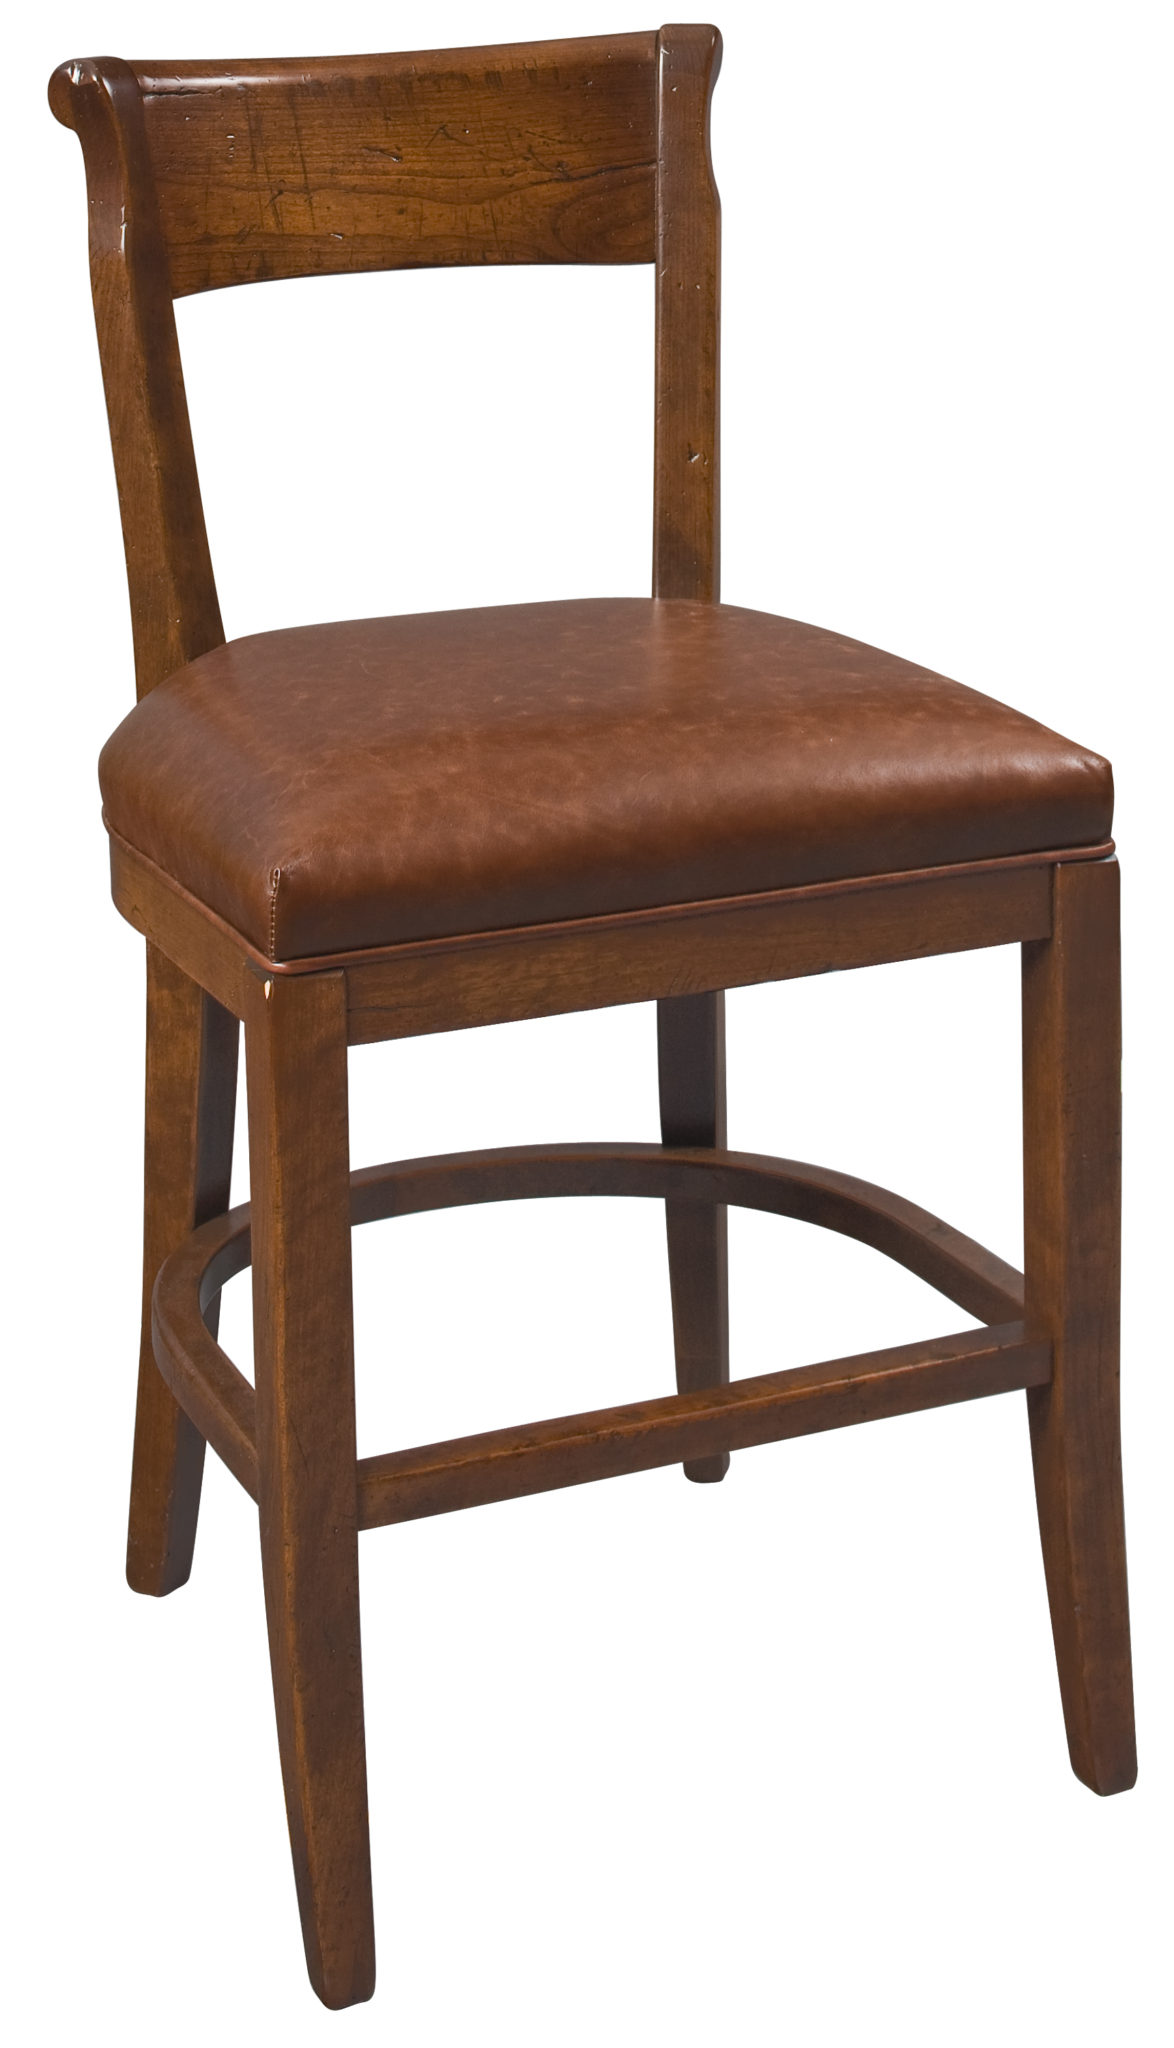 Non Swivel Mid Town Stool Image